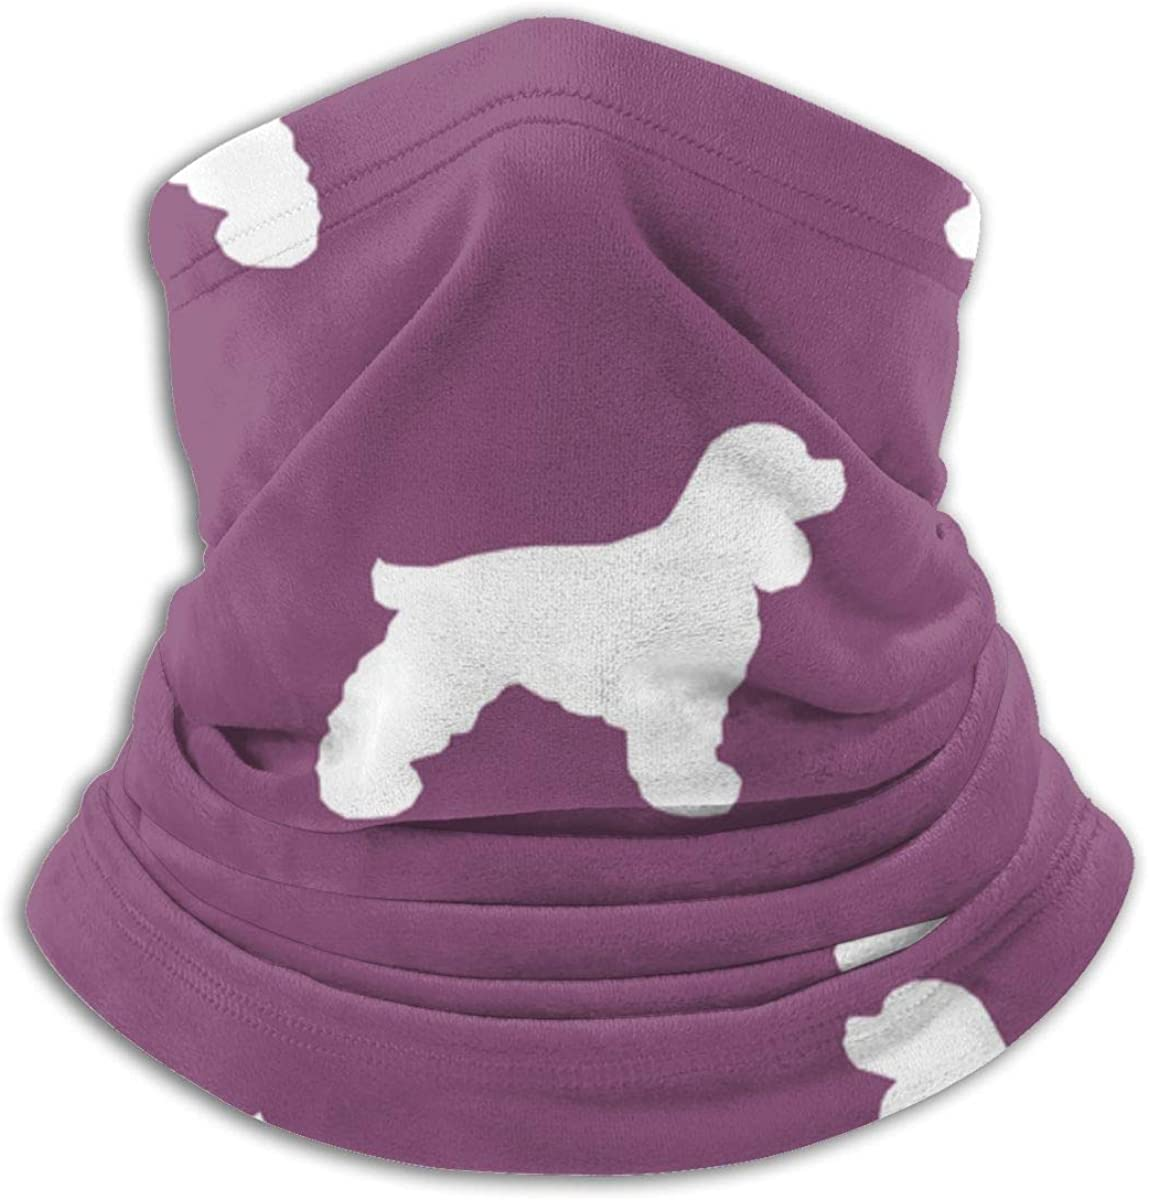 Cocker Spaniel Windproof Bandanas Face Mask Headwrap Face Balaclava Scarf Headband Microfiber Neck Warmer Mask Black